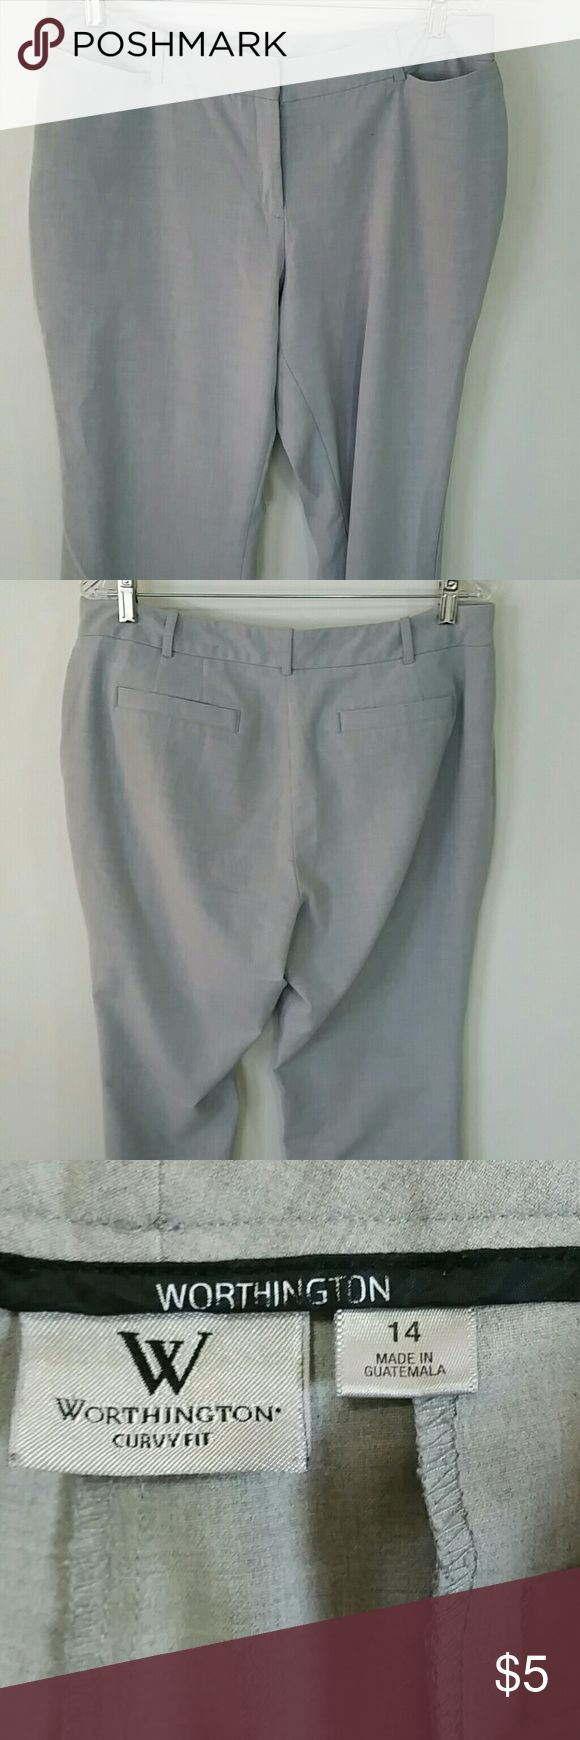 LADIES WORTHINGTON DRESS PANTS . LADIES WORTHINGTON DRESS PANTS,  SIZE 14, CURVY FIT, MADE IN GUATEMALA,  71%POLYESTER,  4%SANDEX,  25%RAYON,  MACHINE WASH COLD,  INSEAM 311/2IN., WAIST 36IN. COLOR LIGHT GREY, MISSING BUTTON ON FRONT CLOSURE. WORTHINGTON Pants